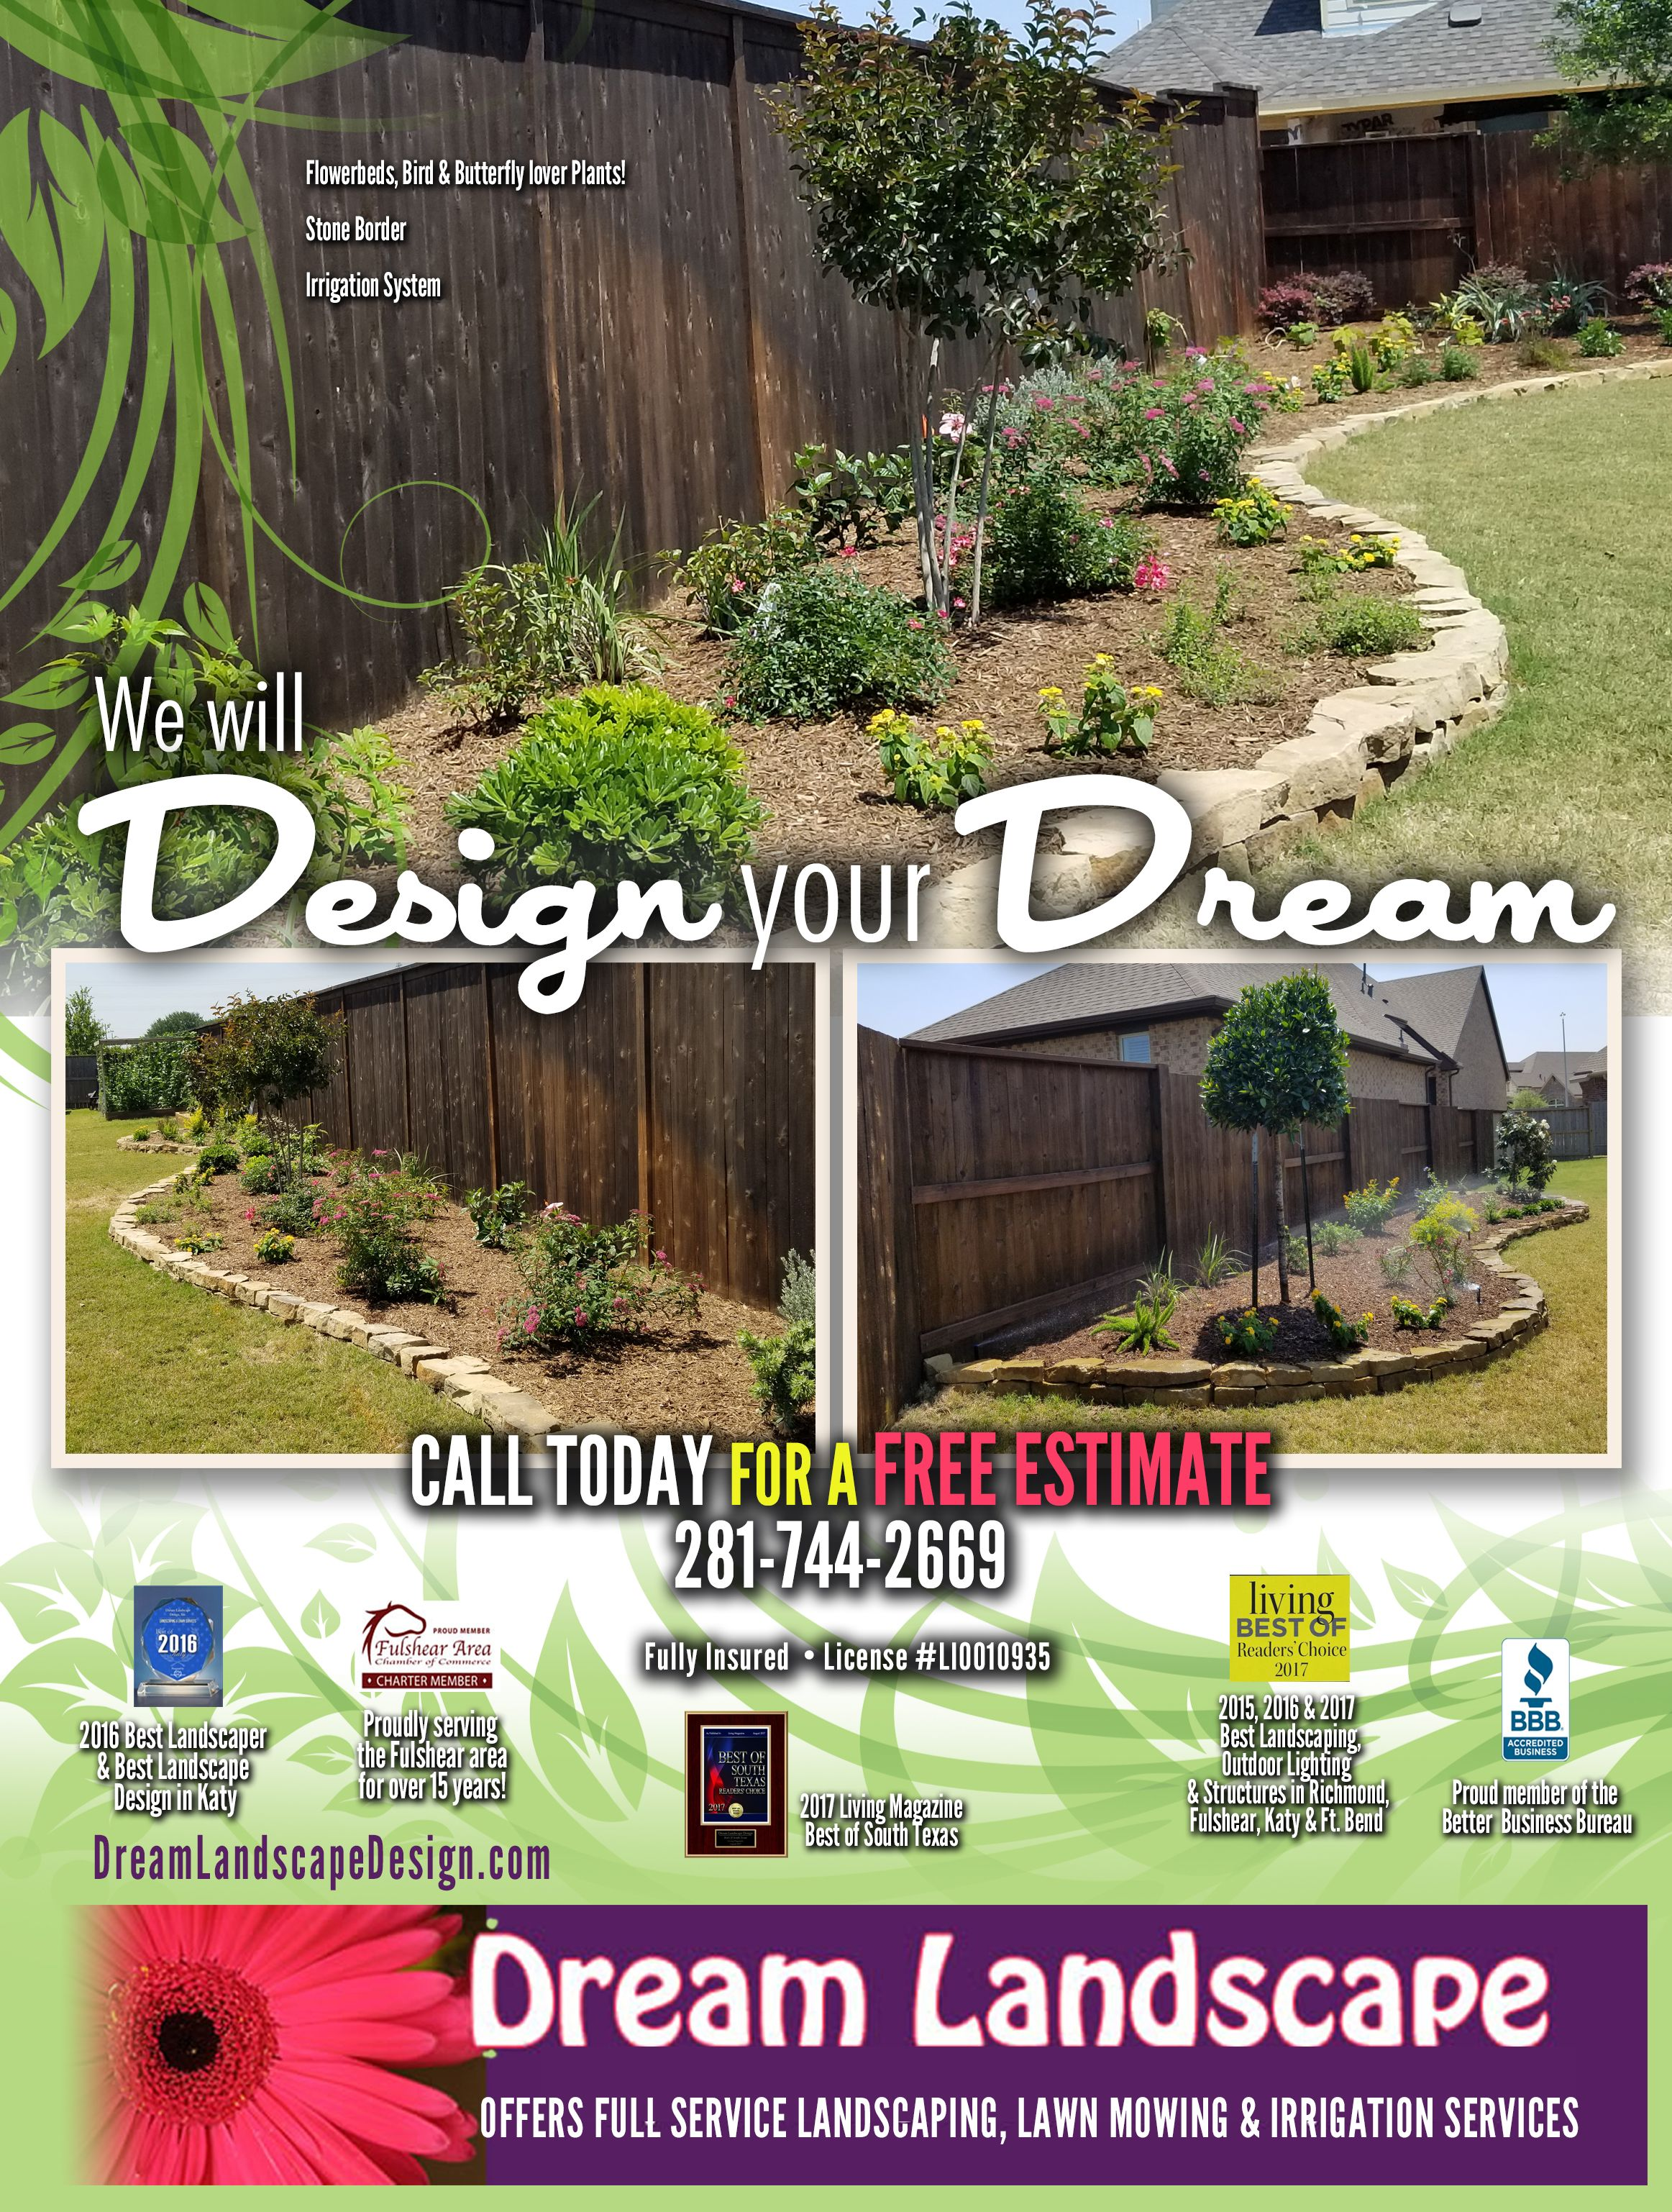 Call Us Today For A Free Estimate On Your Dream Landscape Design